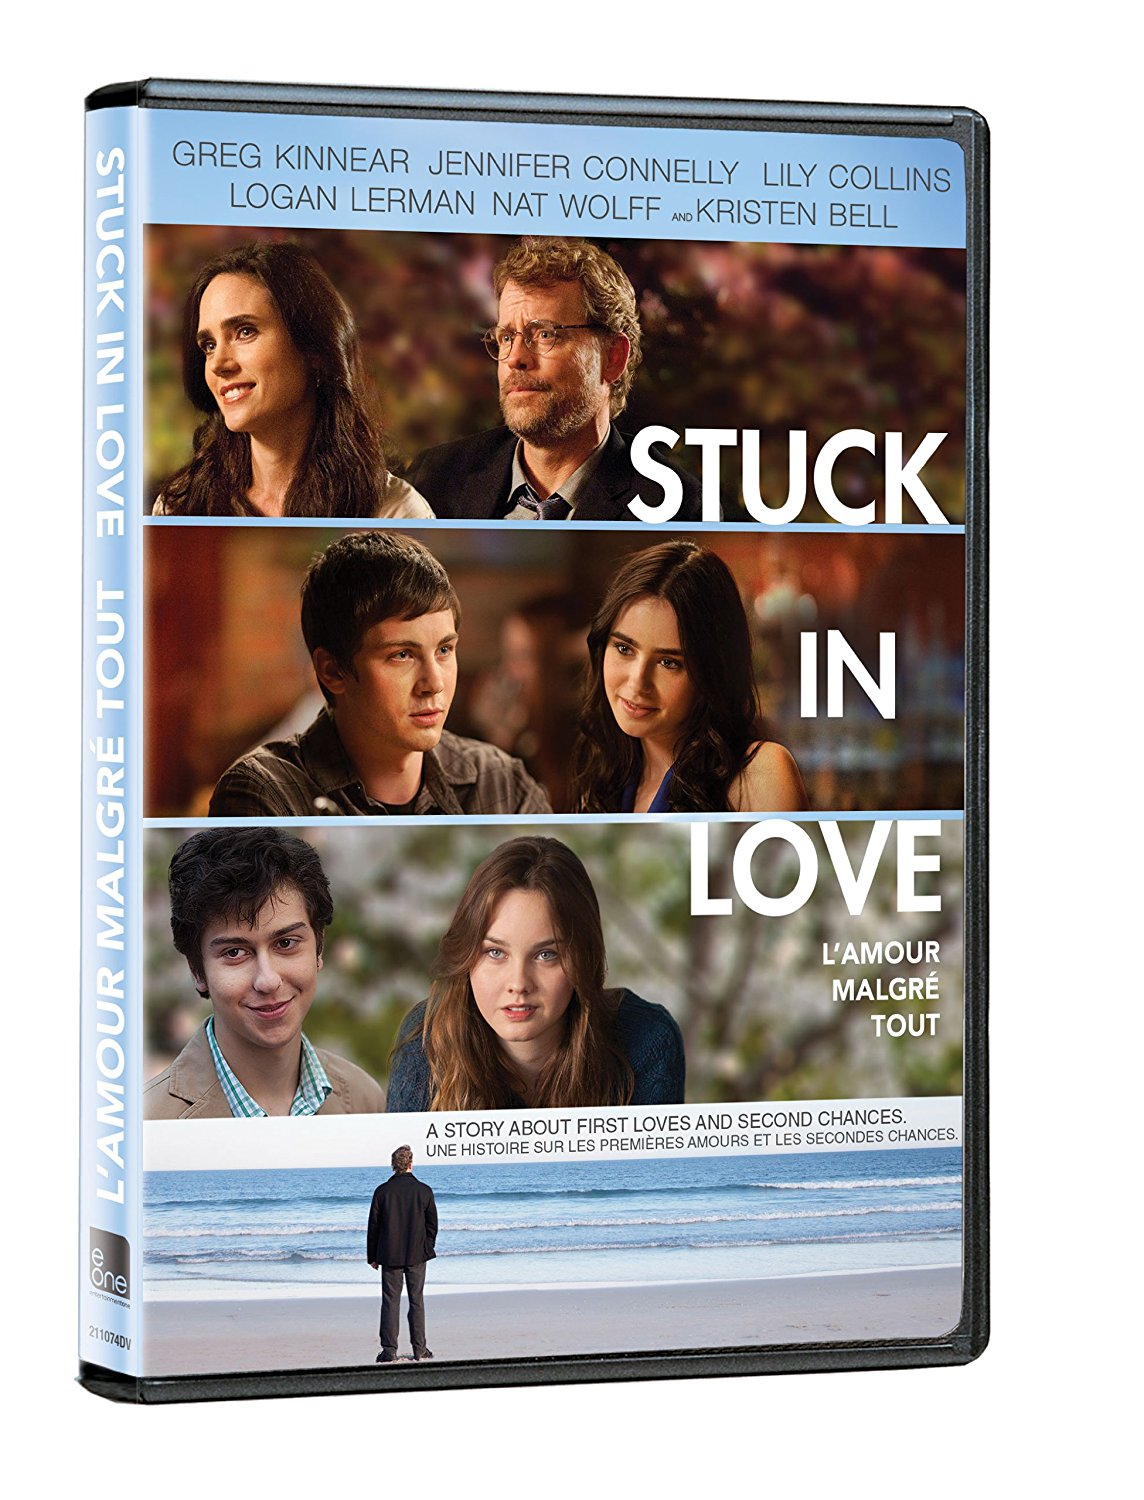 Image of Stuck in Love